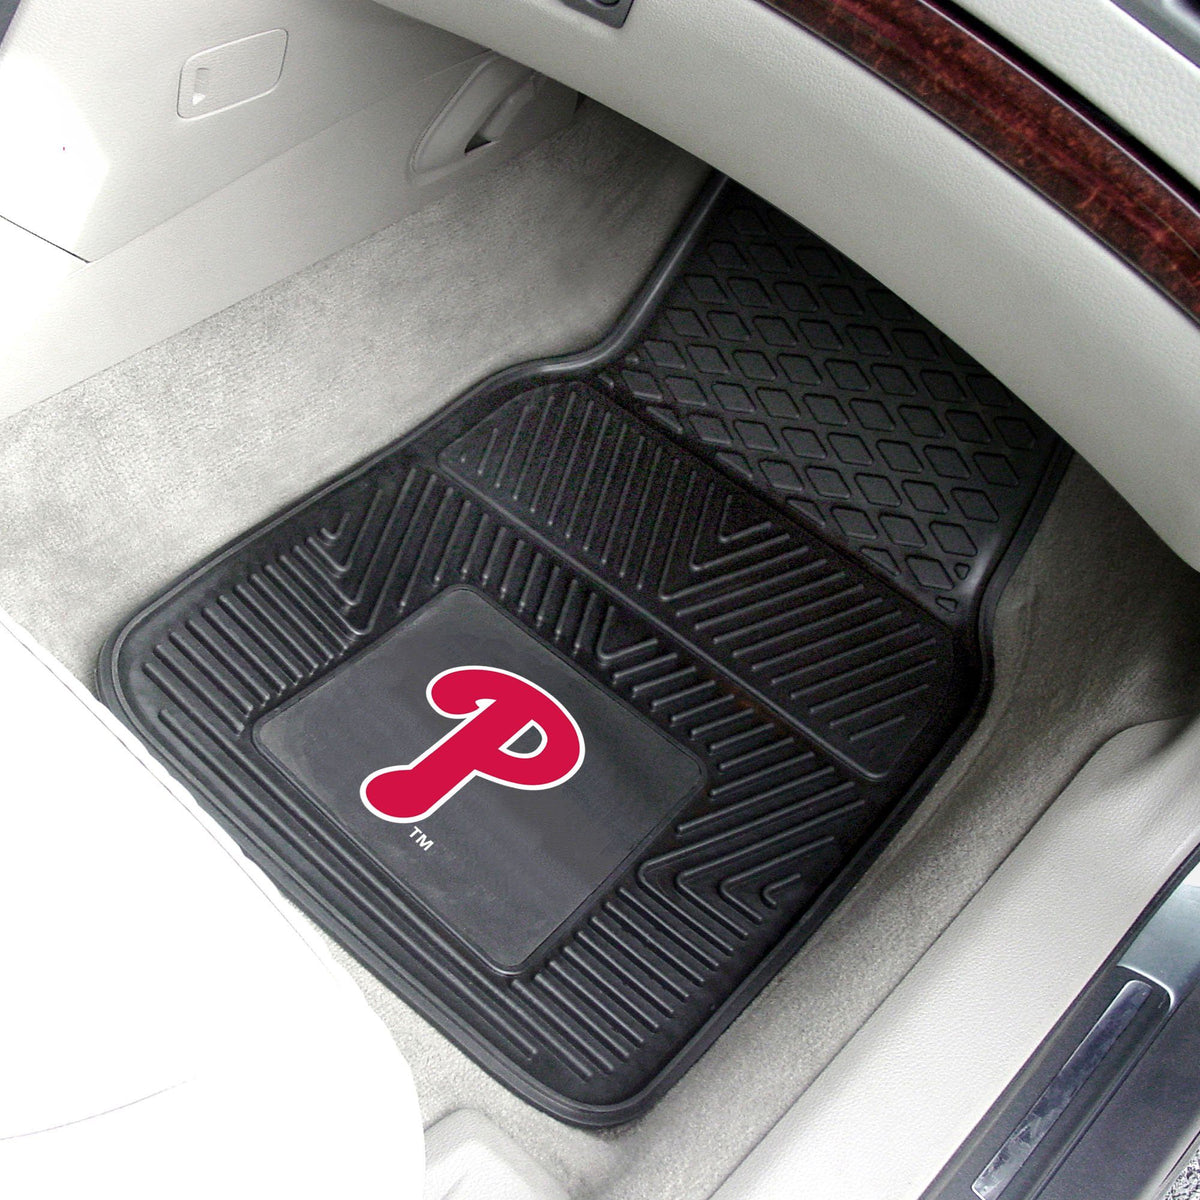 MLB - Vinyl Car Mat, 2-Piece Set MLB Mats, Front Car Mats, 2-pc Vinyl Car Mat Set, MLB, Auto Fan Mats Philadelphia Phillies